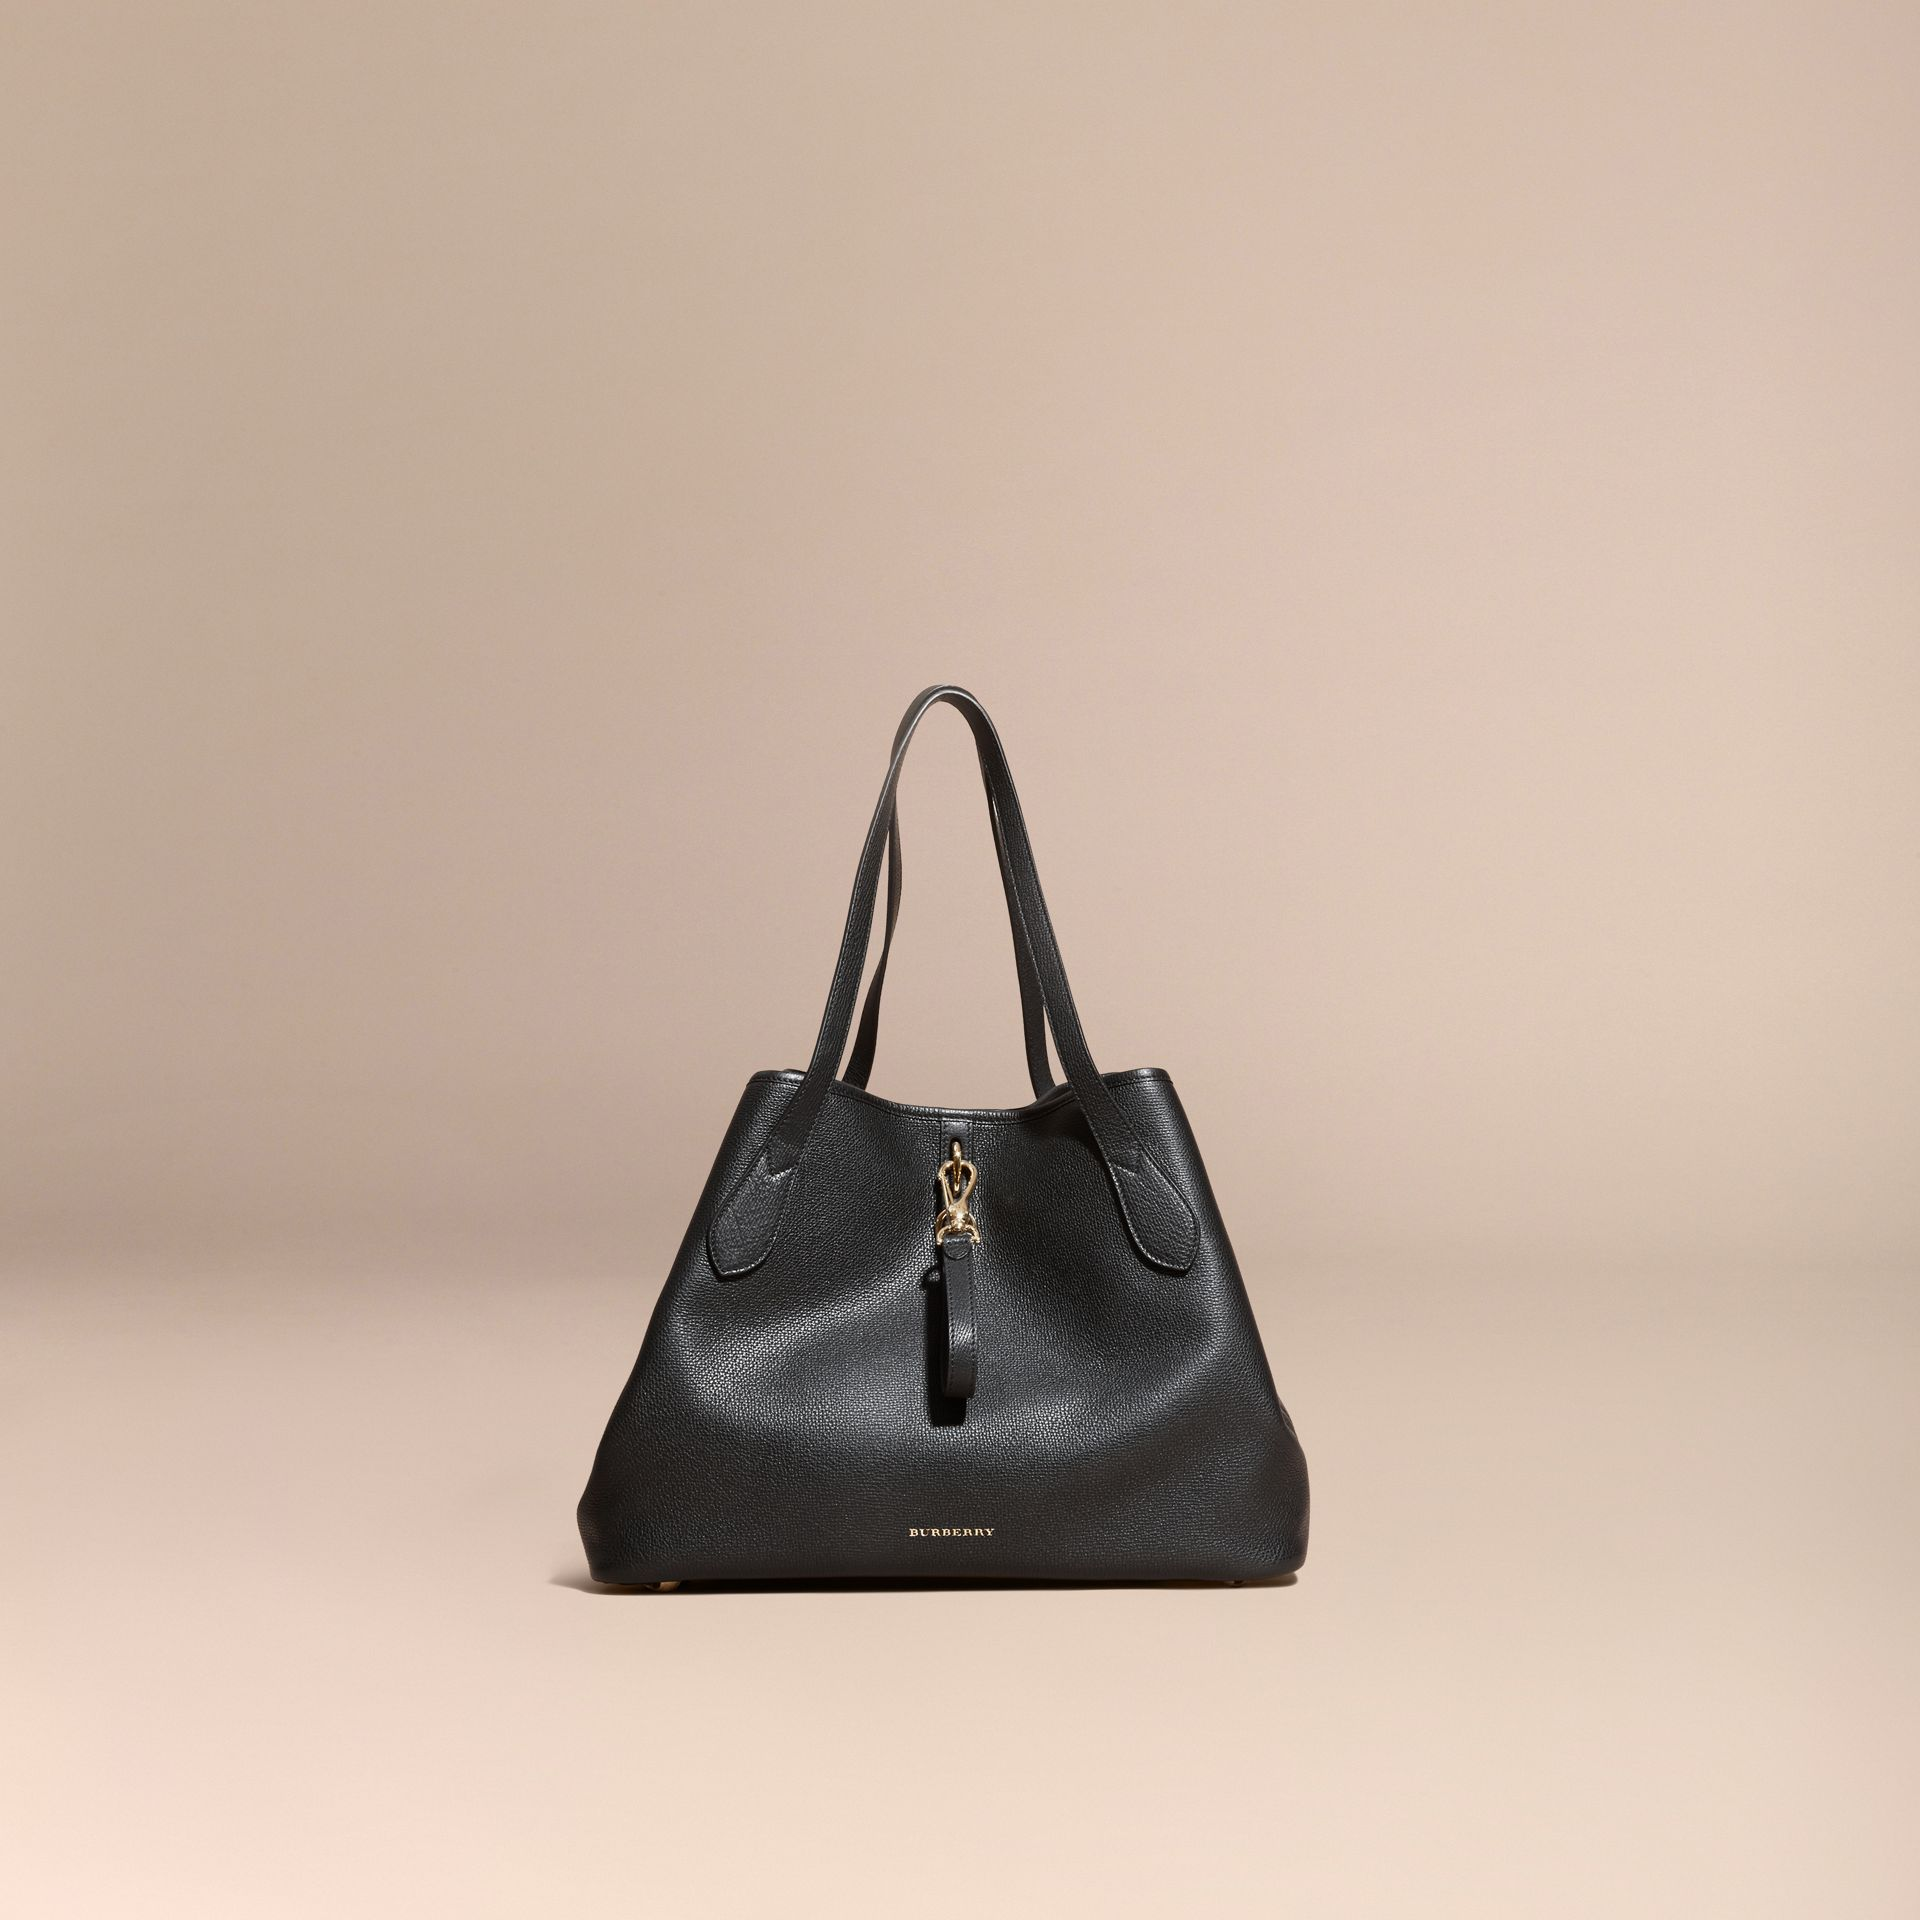 Sac tote medium en cuir grainé Noir - photo de la galerie 8